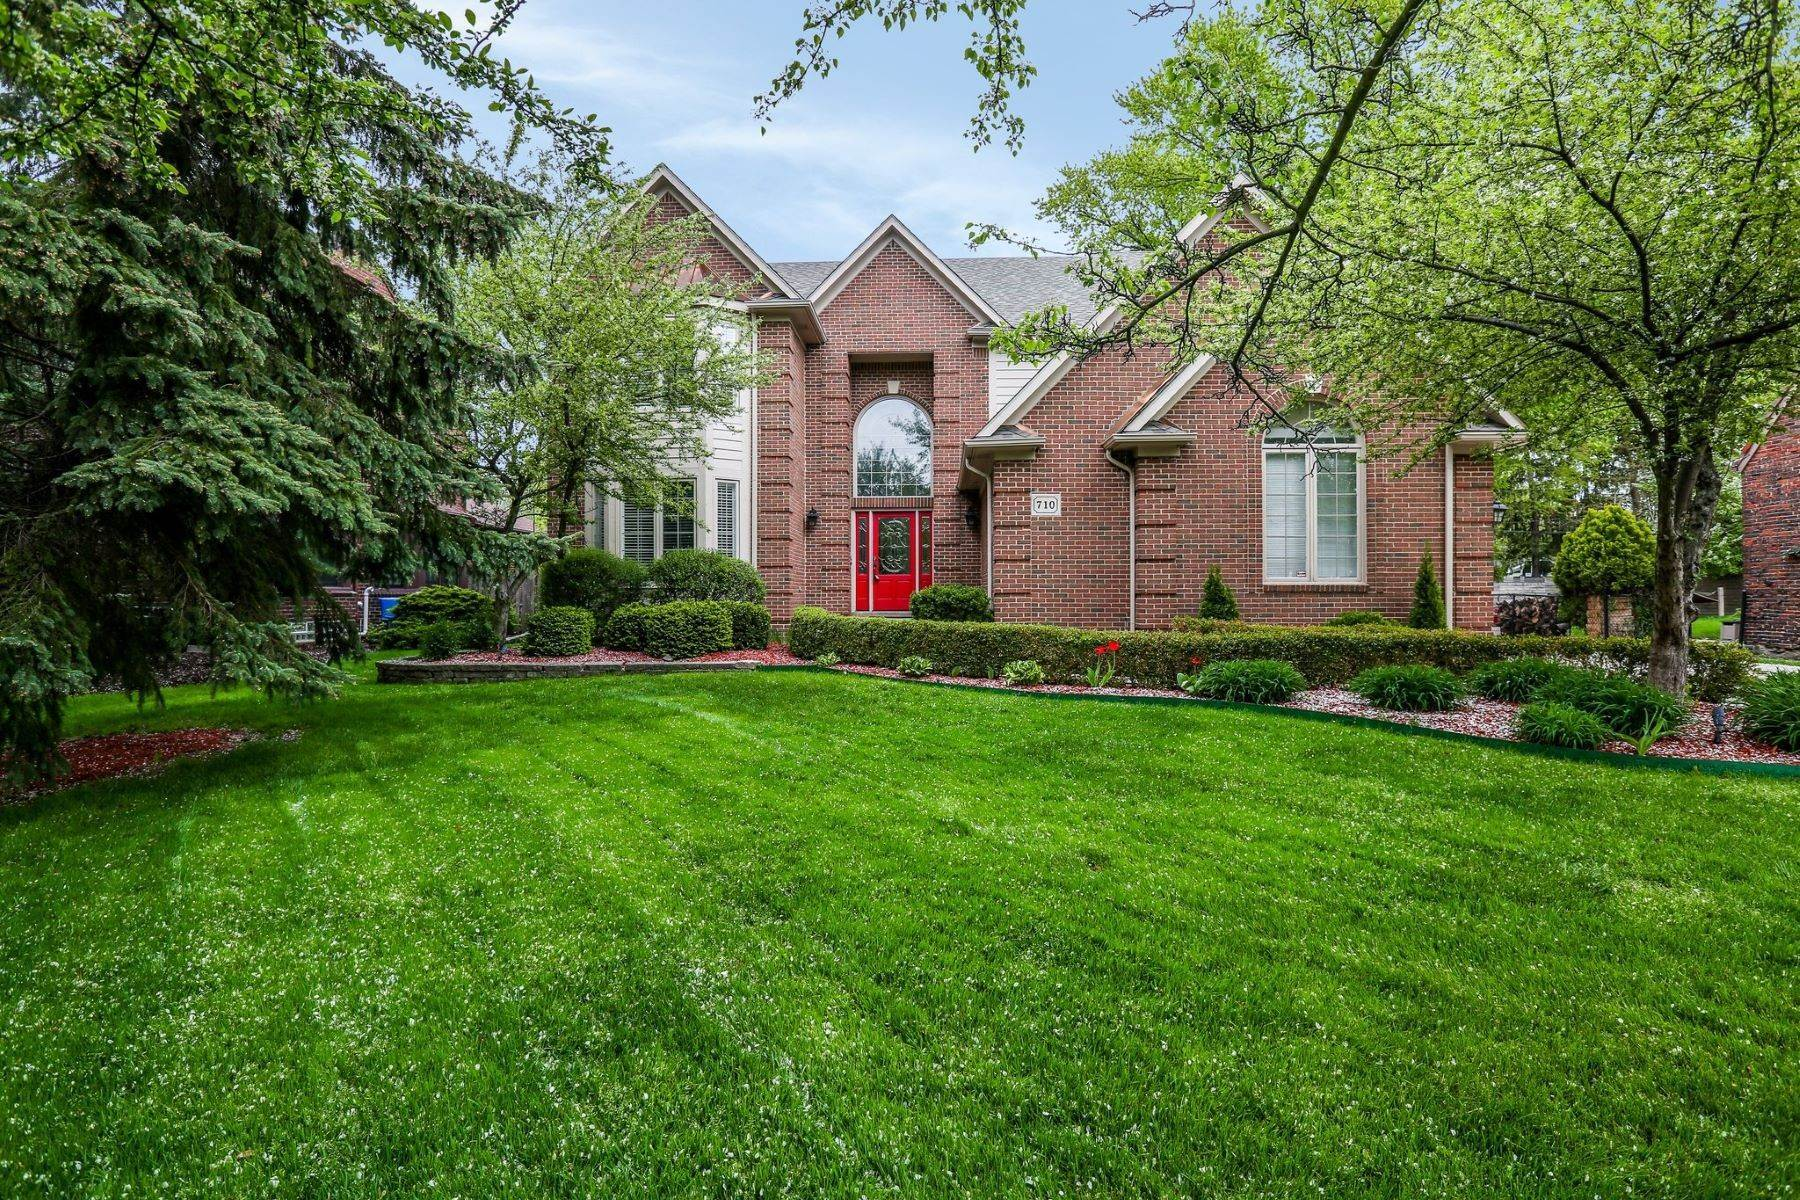 Single Family Homes for Sale at Grosse Pointe Park 710 Lakepointe Grosse Pointe Park, Michigan 48230 United States